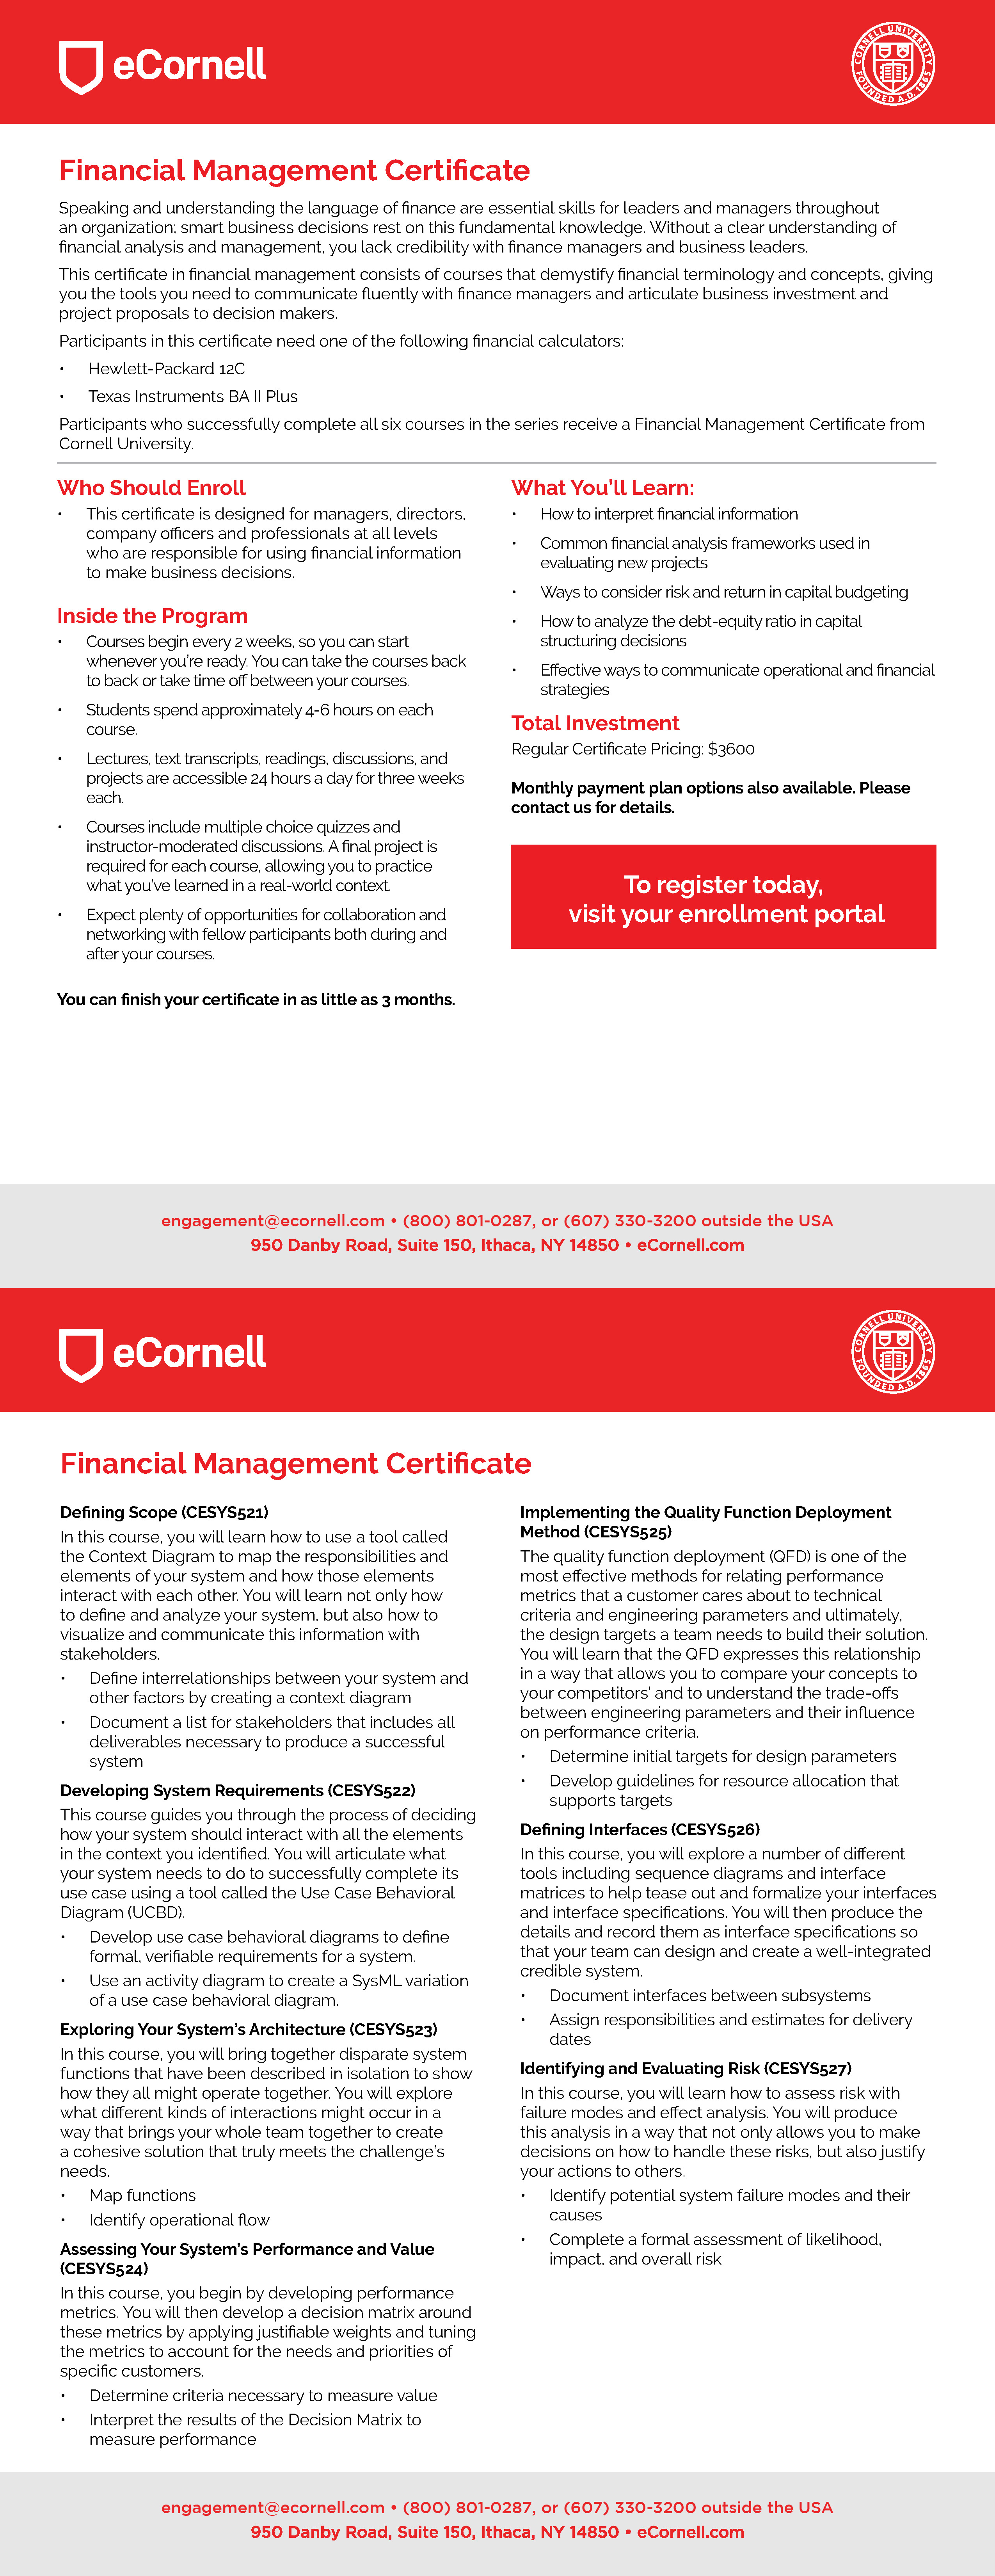 Financial Management Certificate Flyer for Corporations